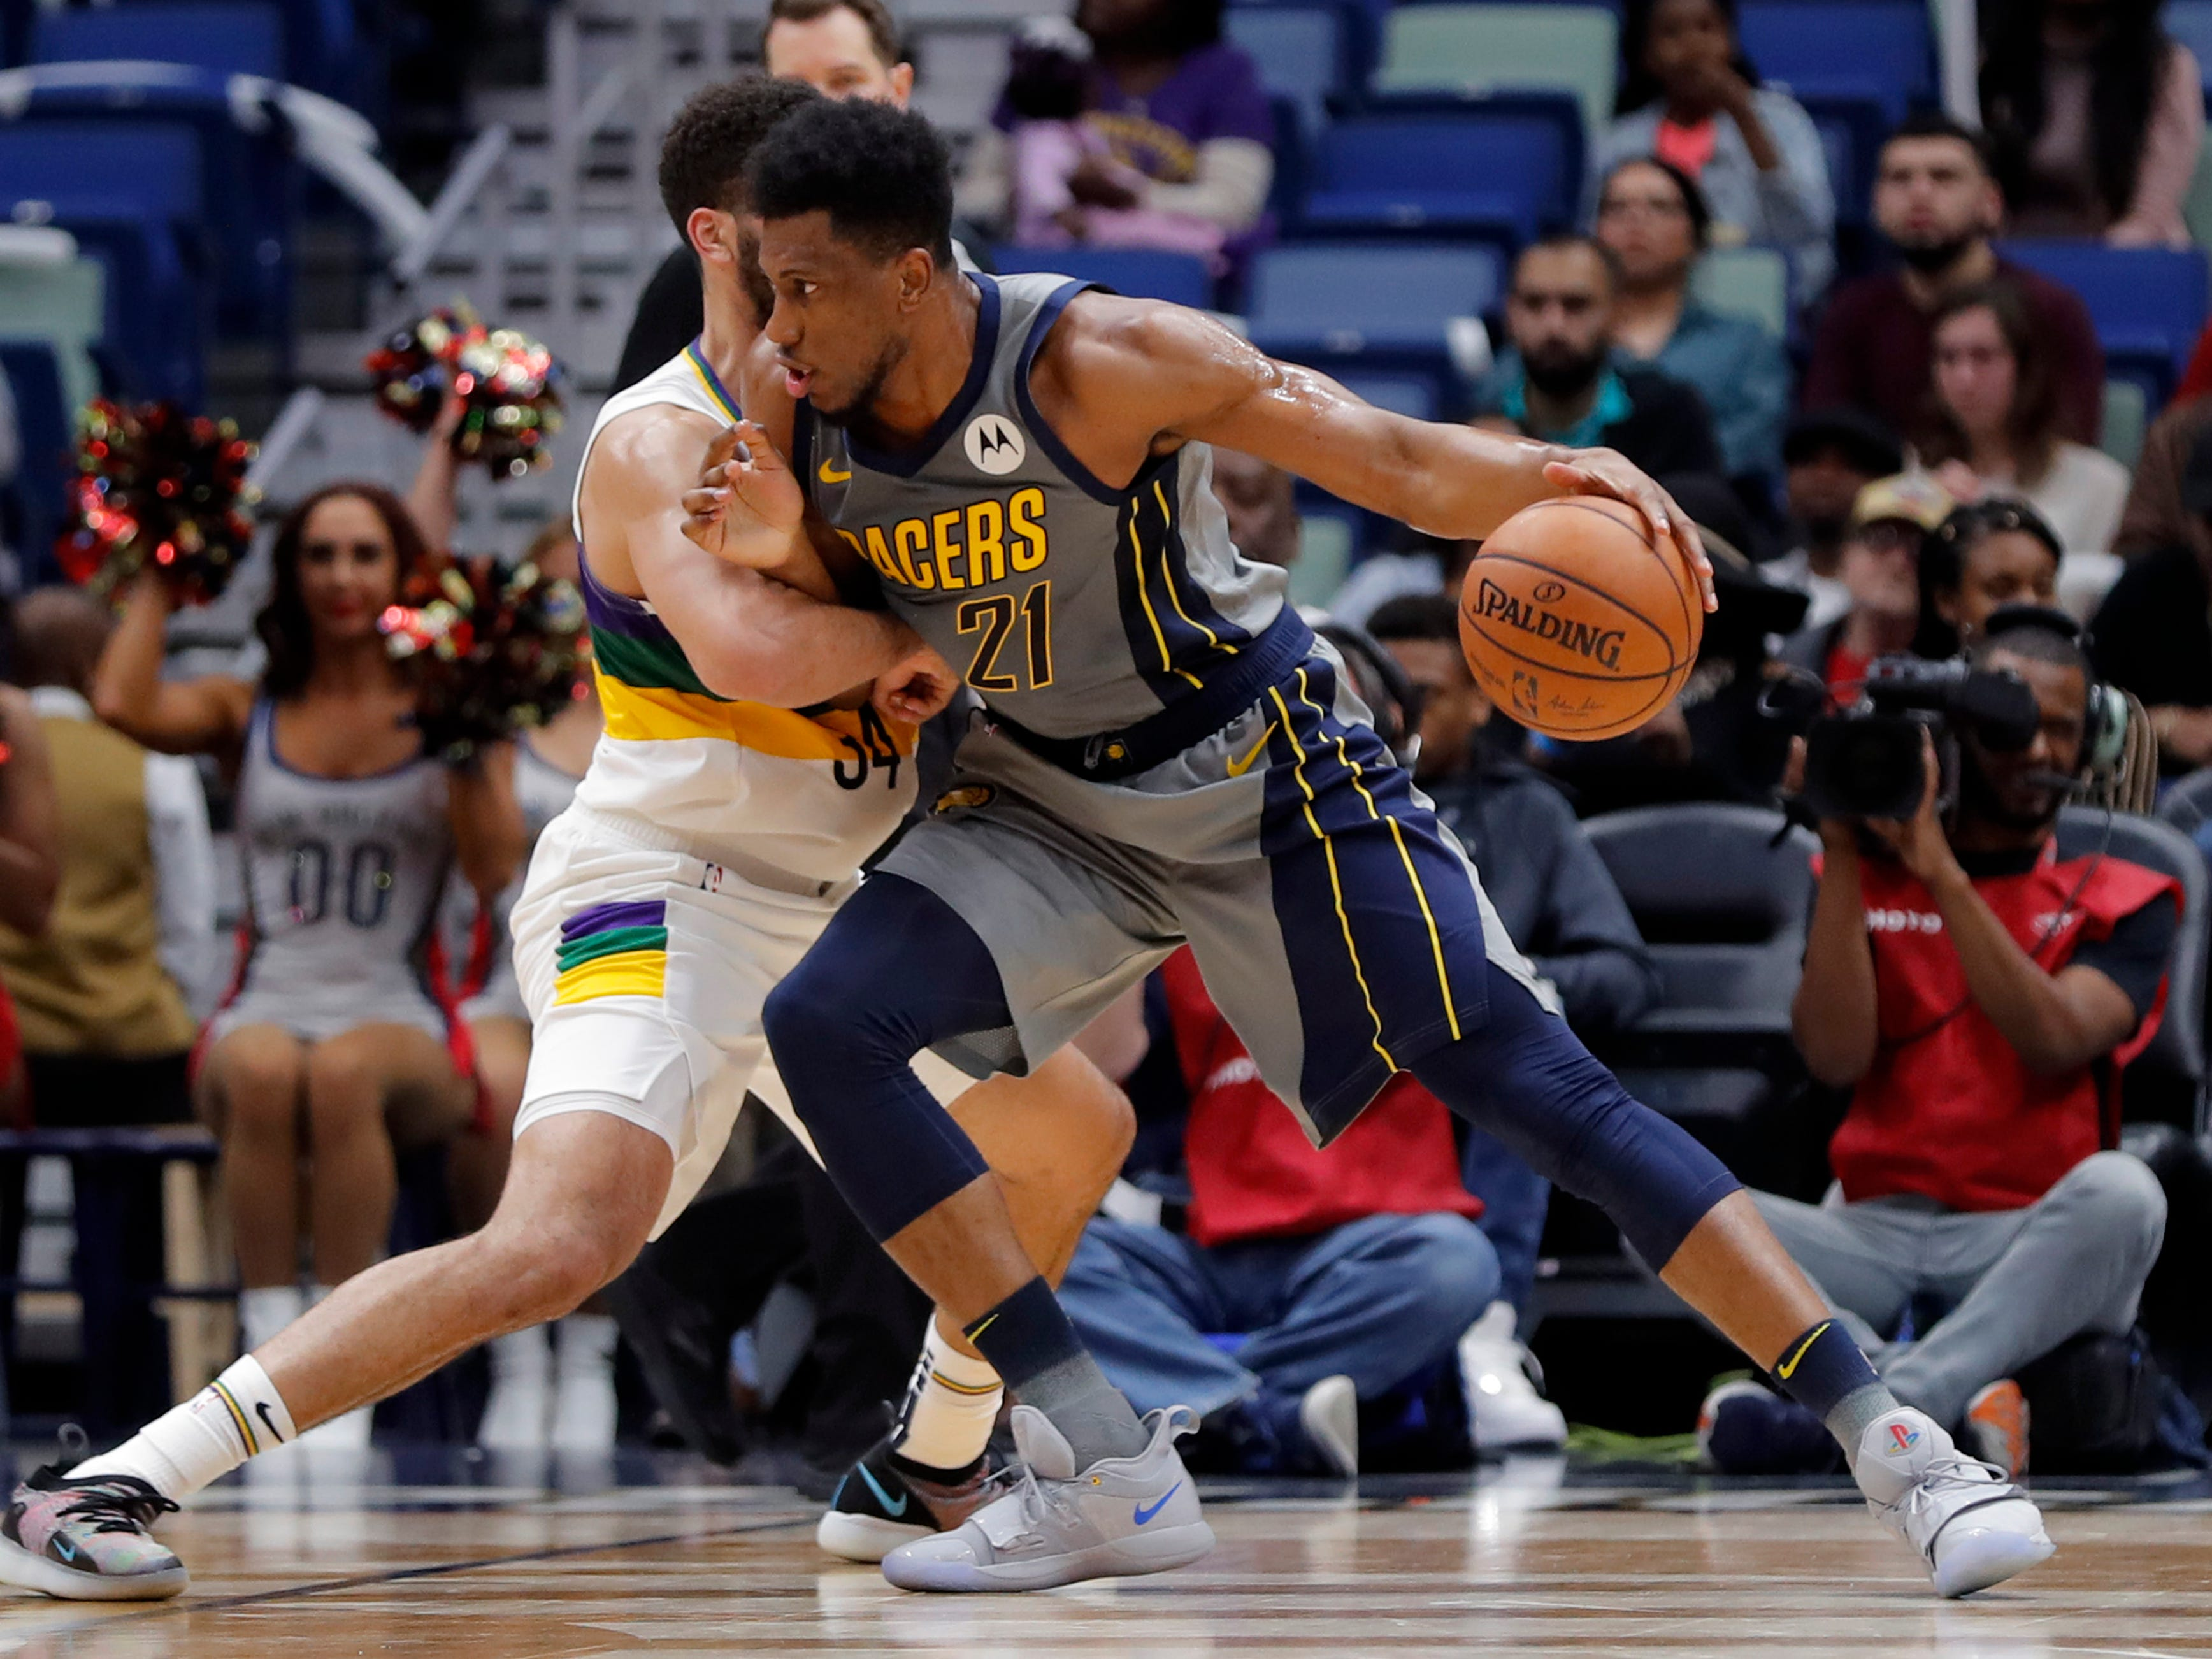 Indiana Pacers forward Thaddeus Young (21) drives to the basket against New Orleans Pelicans guard Kenrich Williams (34) in the first half of an NBA basketball game in New Orleans, Monday, Feb. 4, 2019.